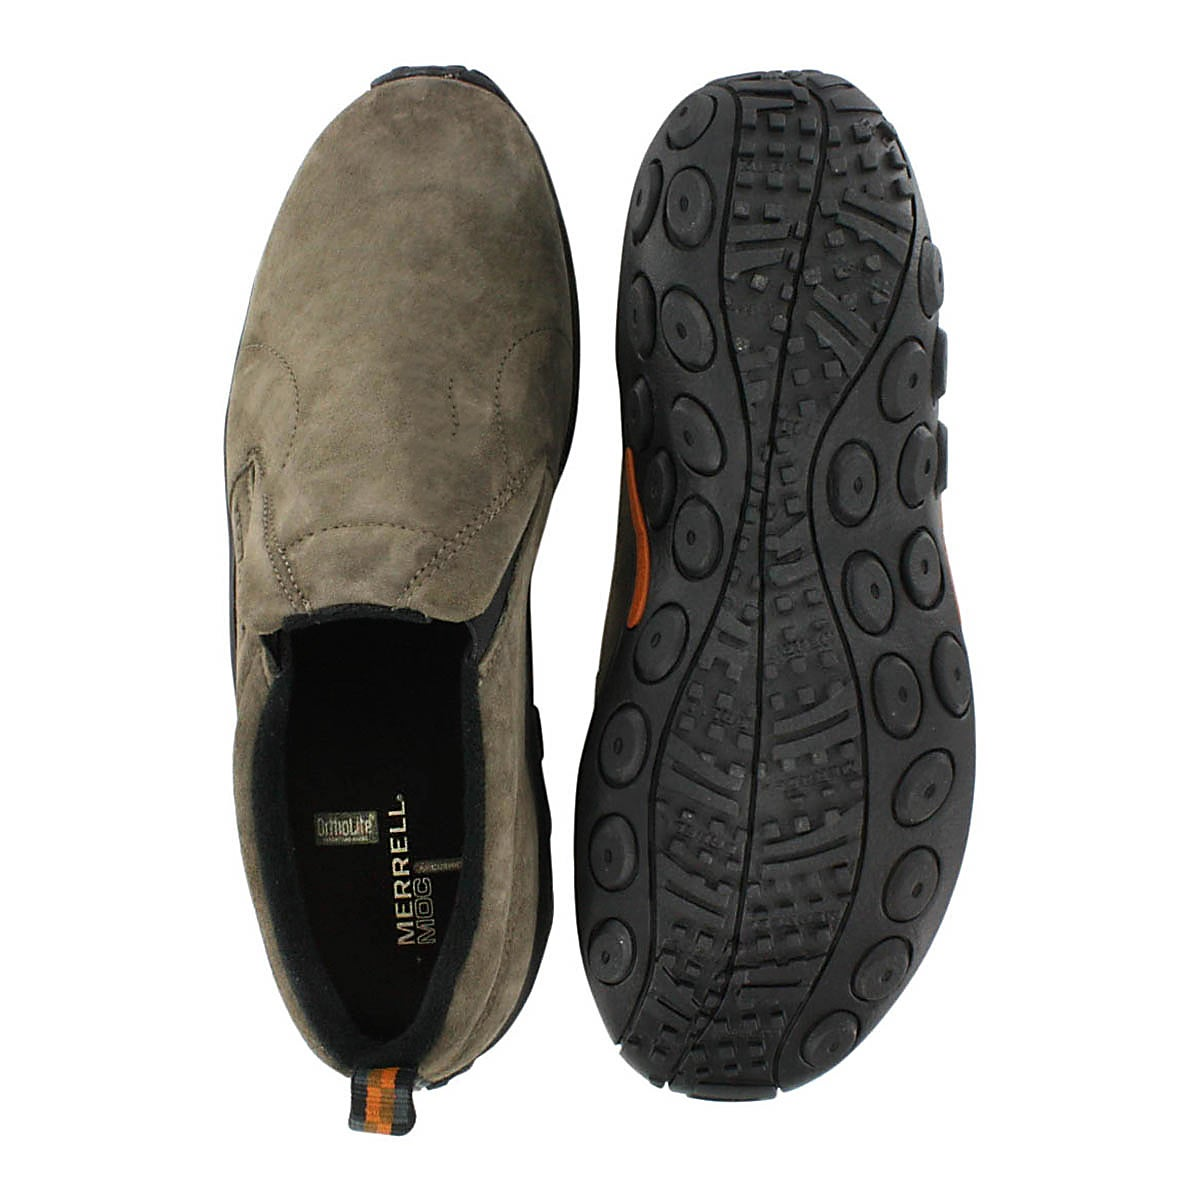 Lds Jungle Moc gunsmoke 2 gore slip on